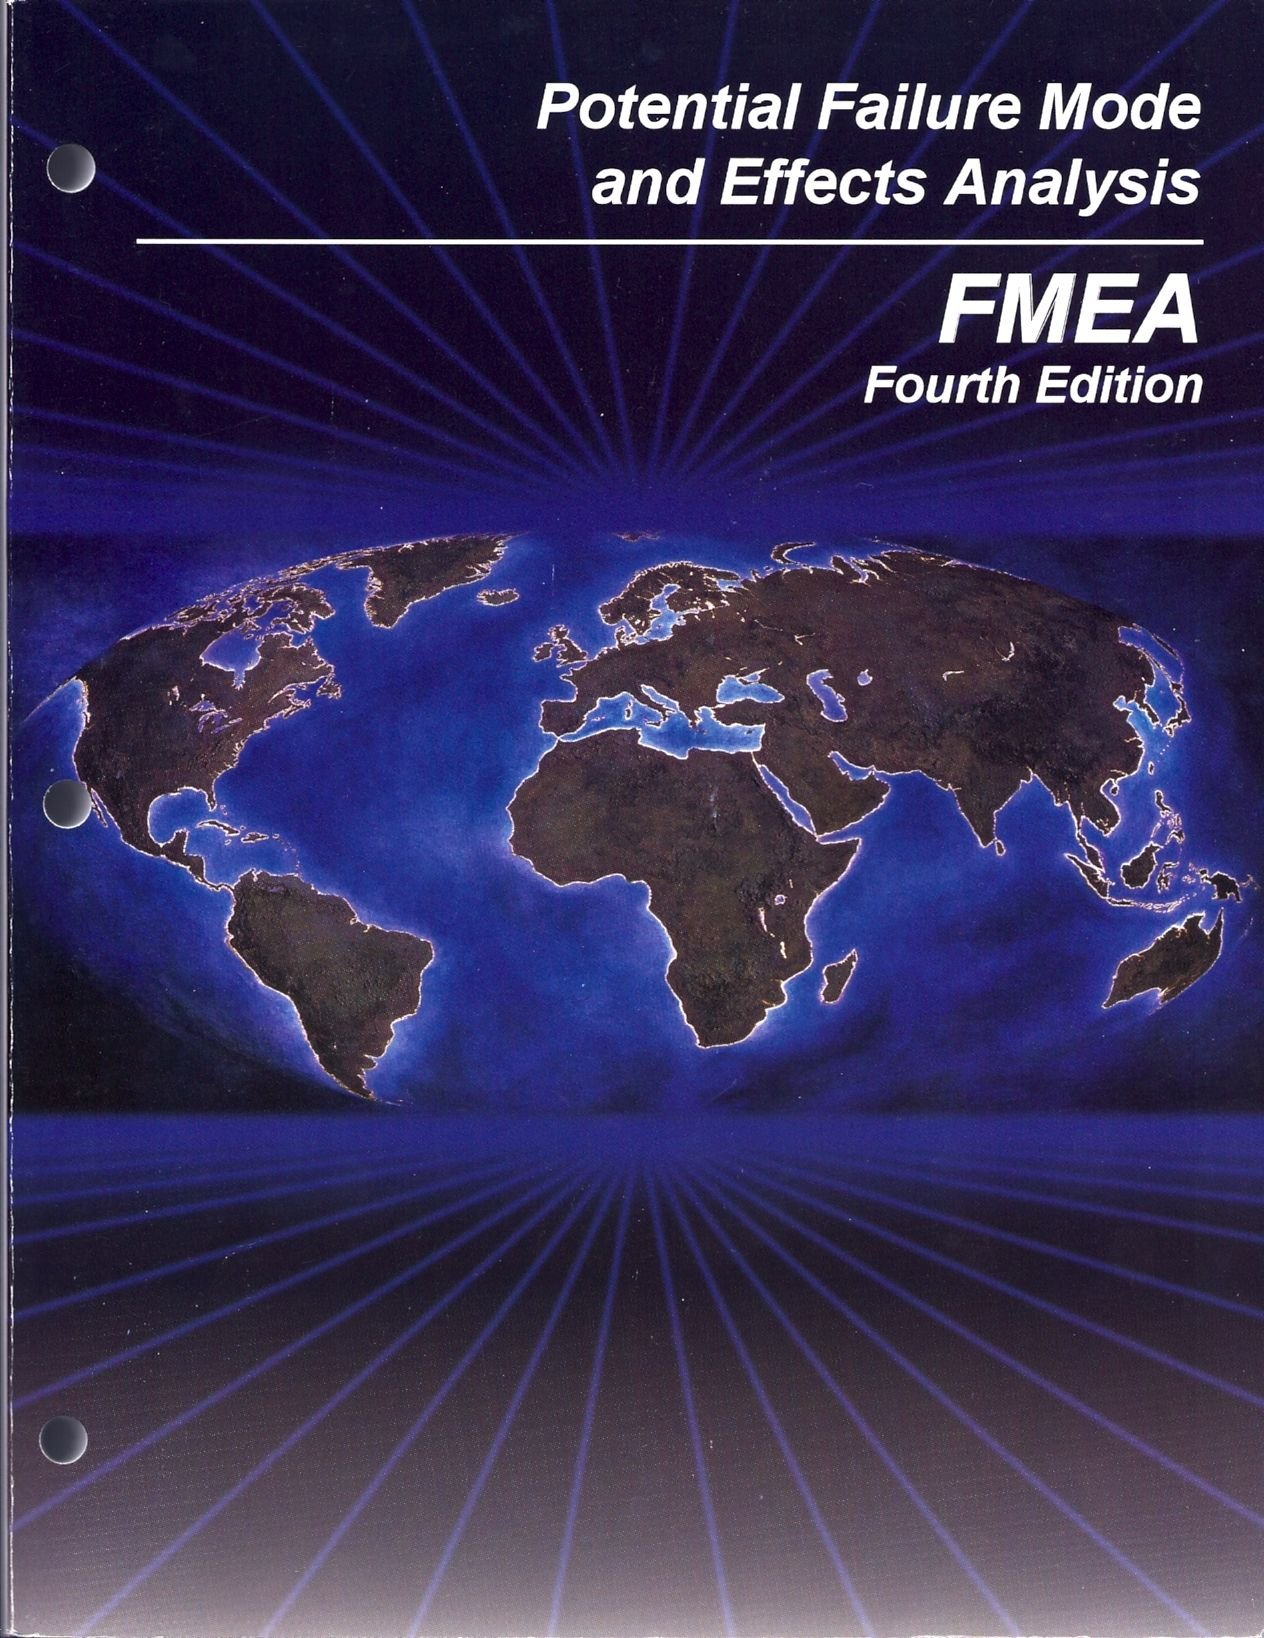 Failure mode and effect analysis fmea and criticality analysis.